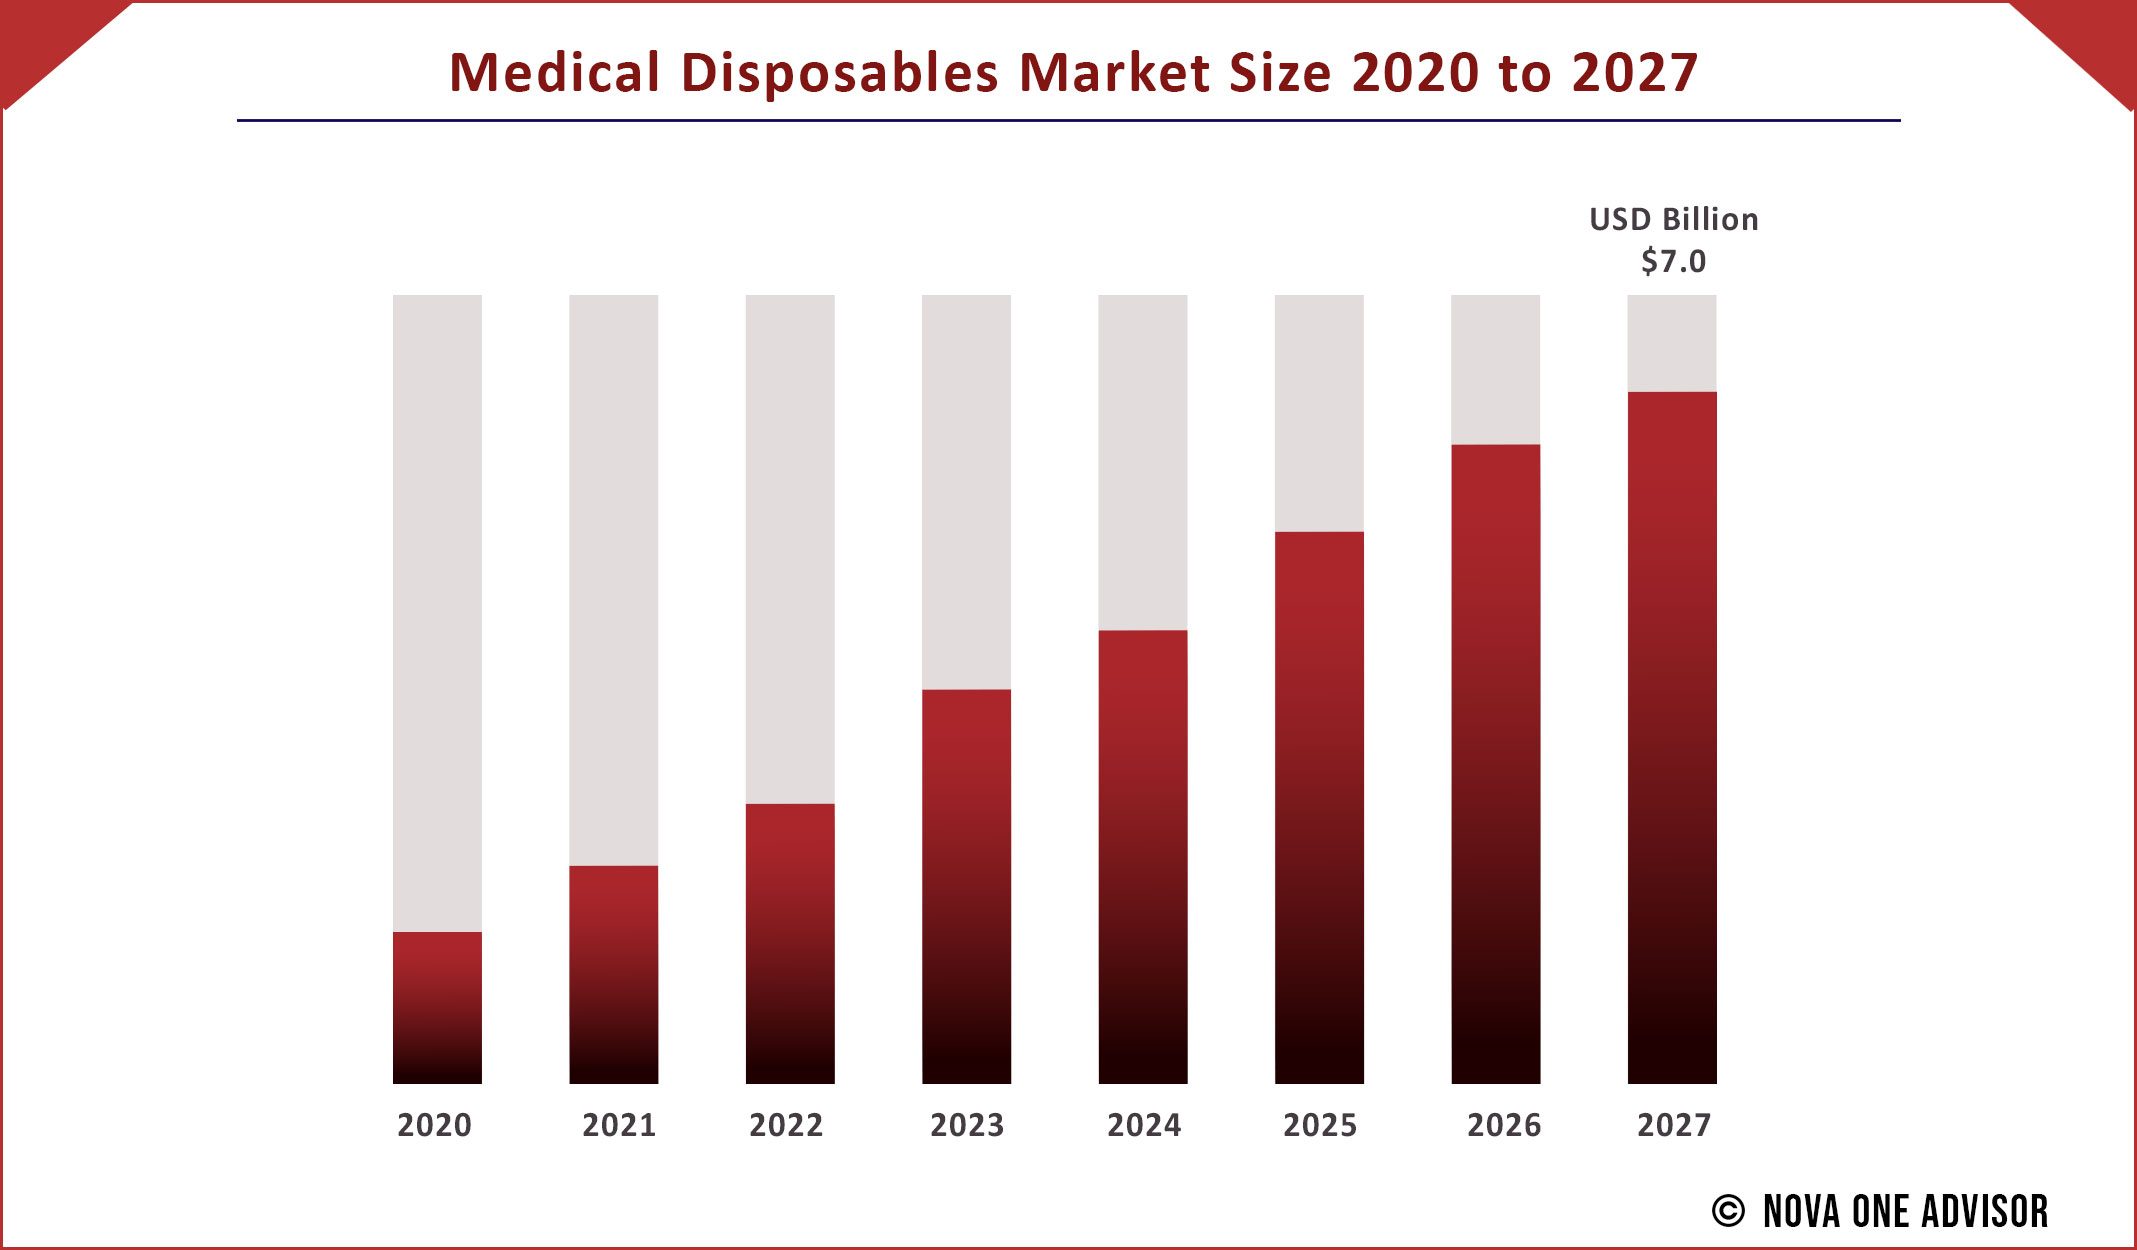 Medical Disposable Market Size 2020 to 2027